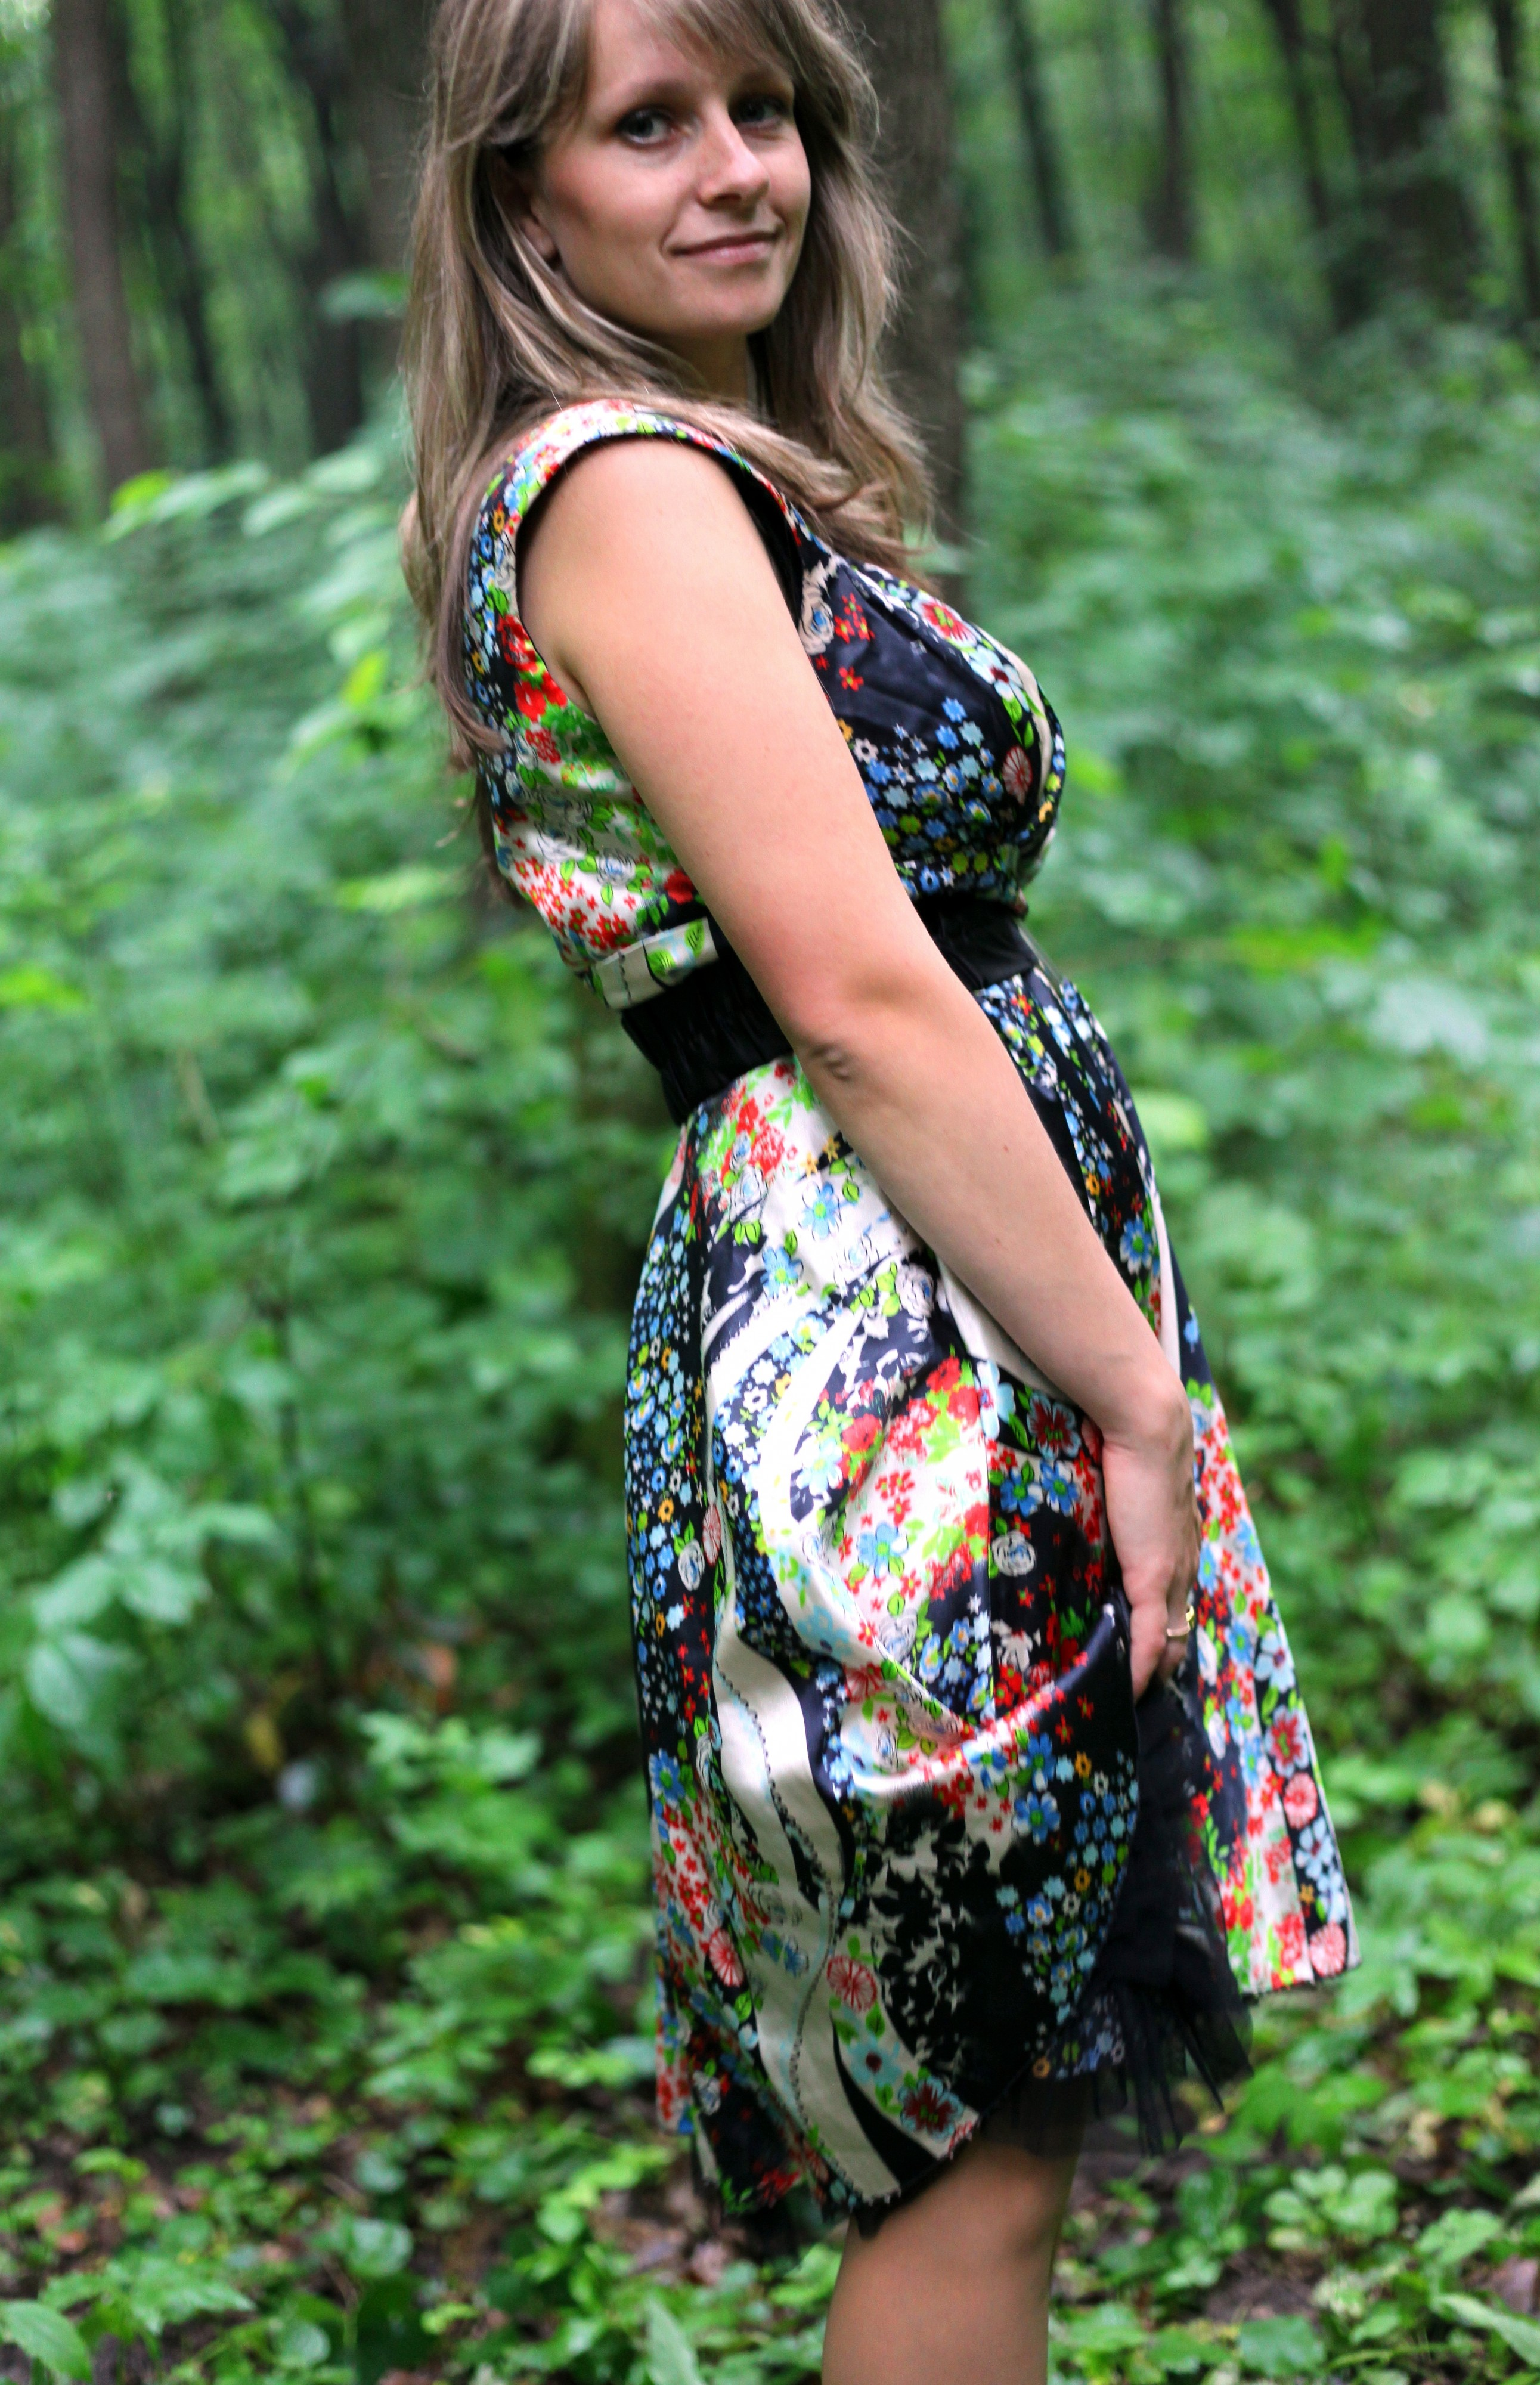 a young Catholic woman wearing a colorful dress in a forest in June 2013, portrait 9/9